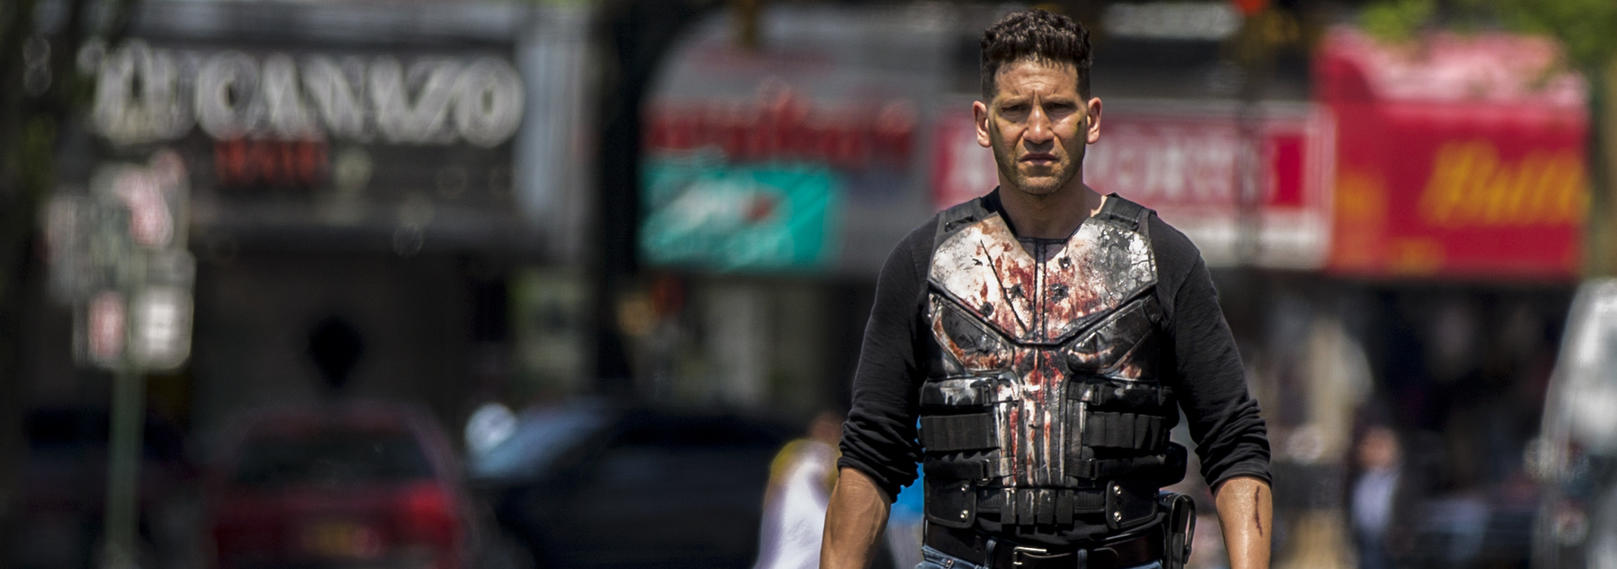 "Jon Bernthal in ""Marvel's The Punisher"""